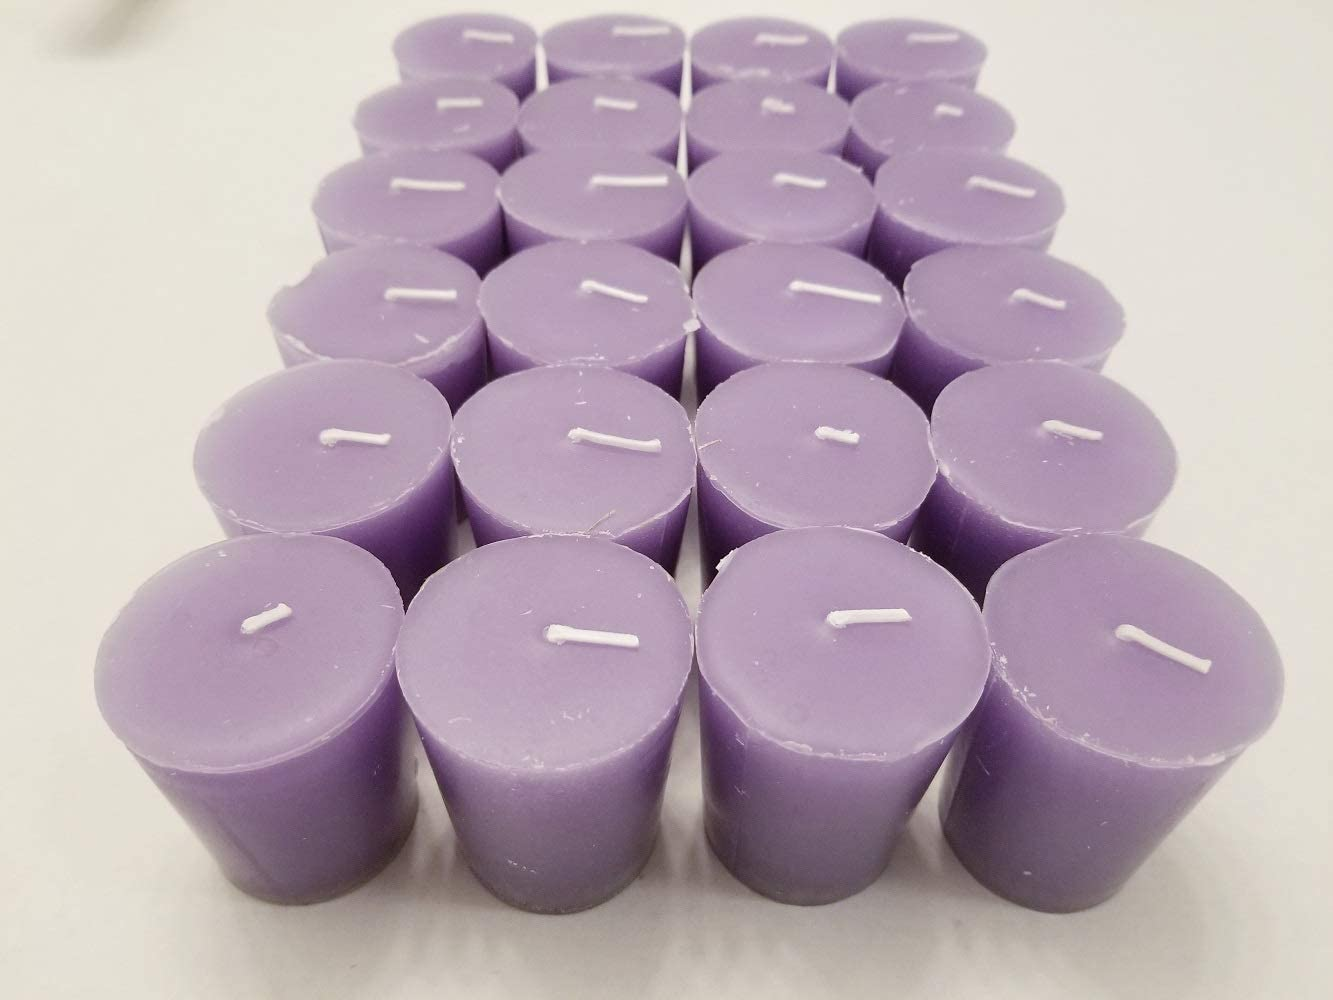 Amazon Com Old Candle Barn 24 Piece Votive Candles Lavender Scented 15 Hour Perfect Light Purple Votives Hand Poured Made In Usa Home Kitchen